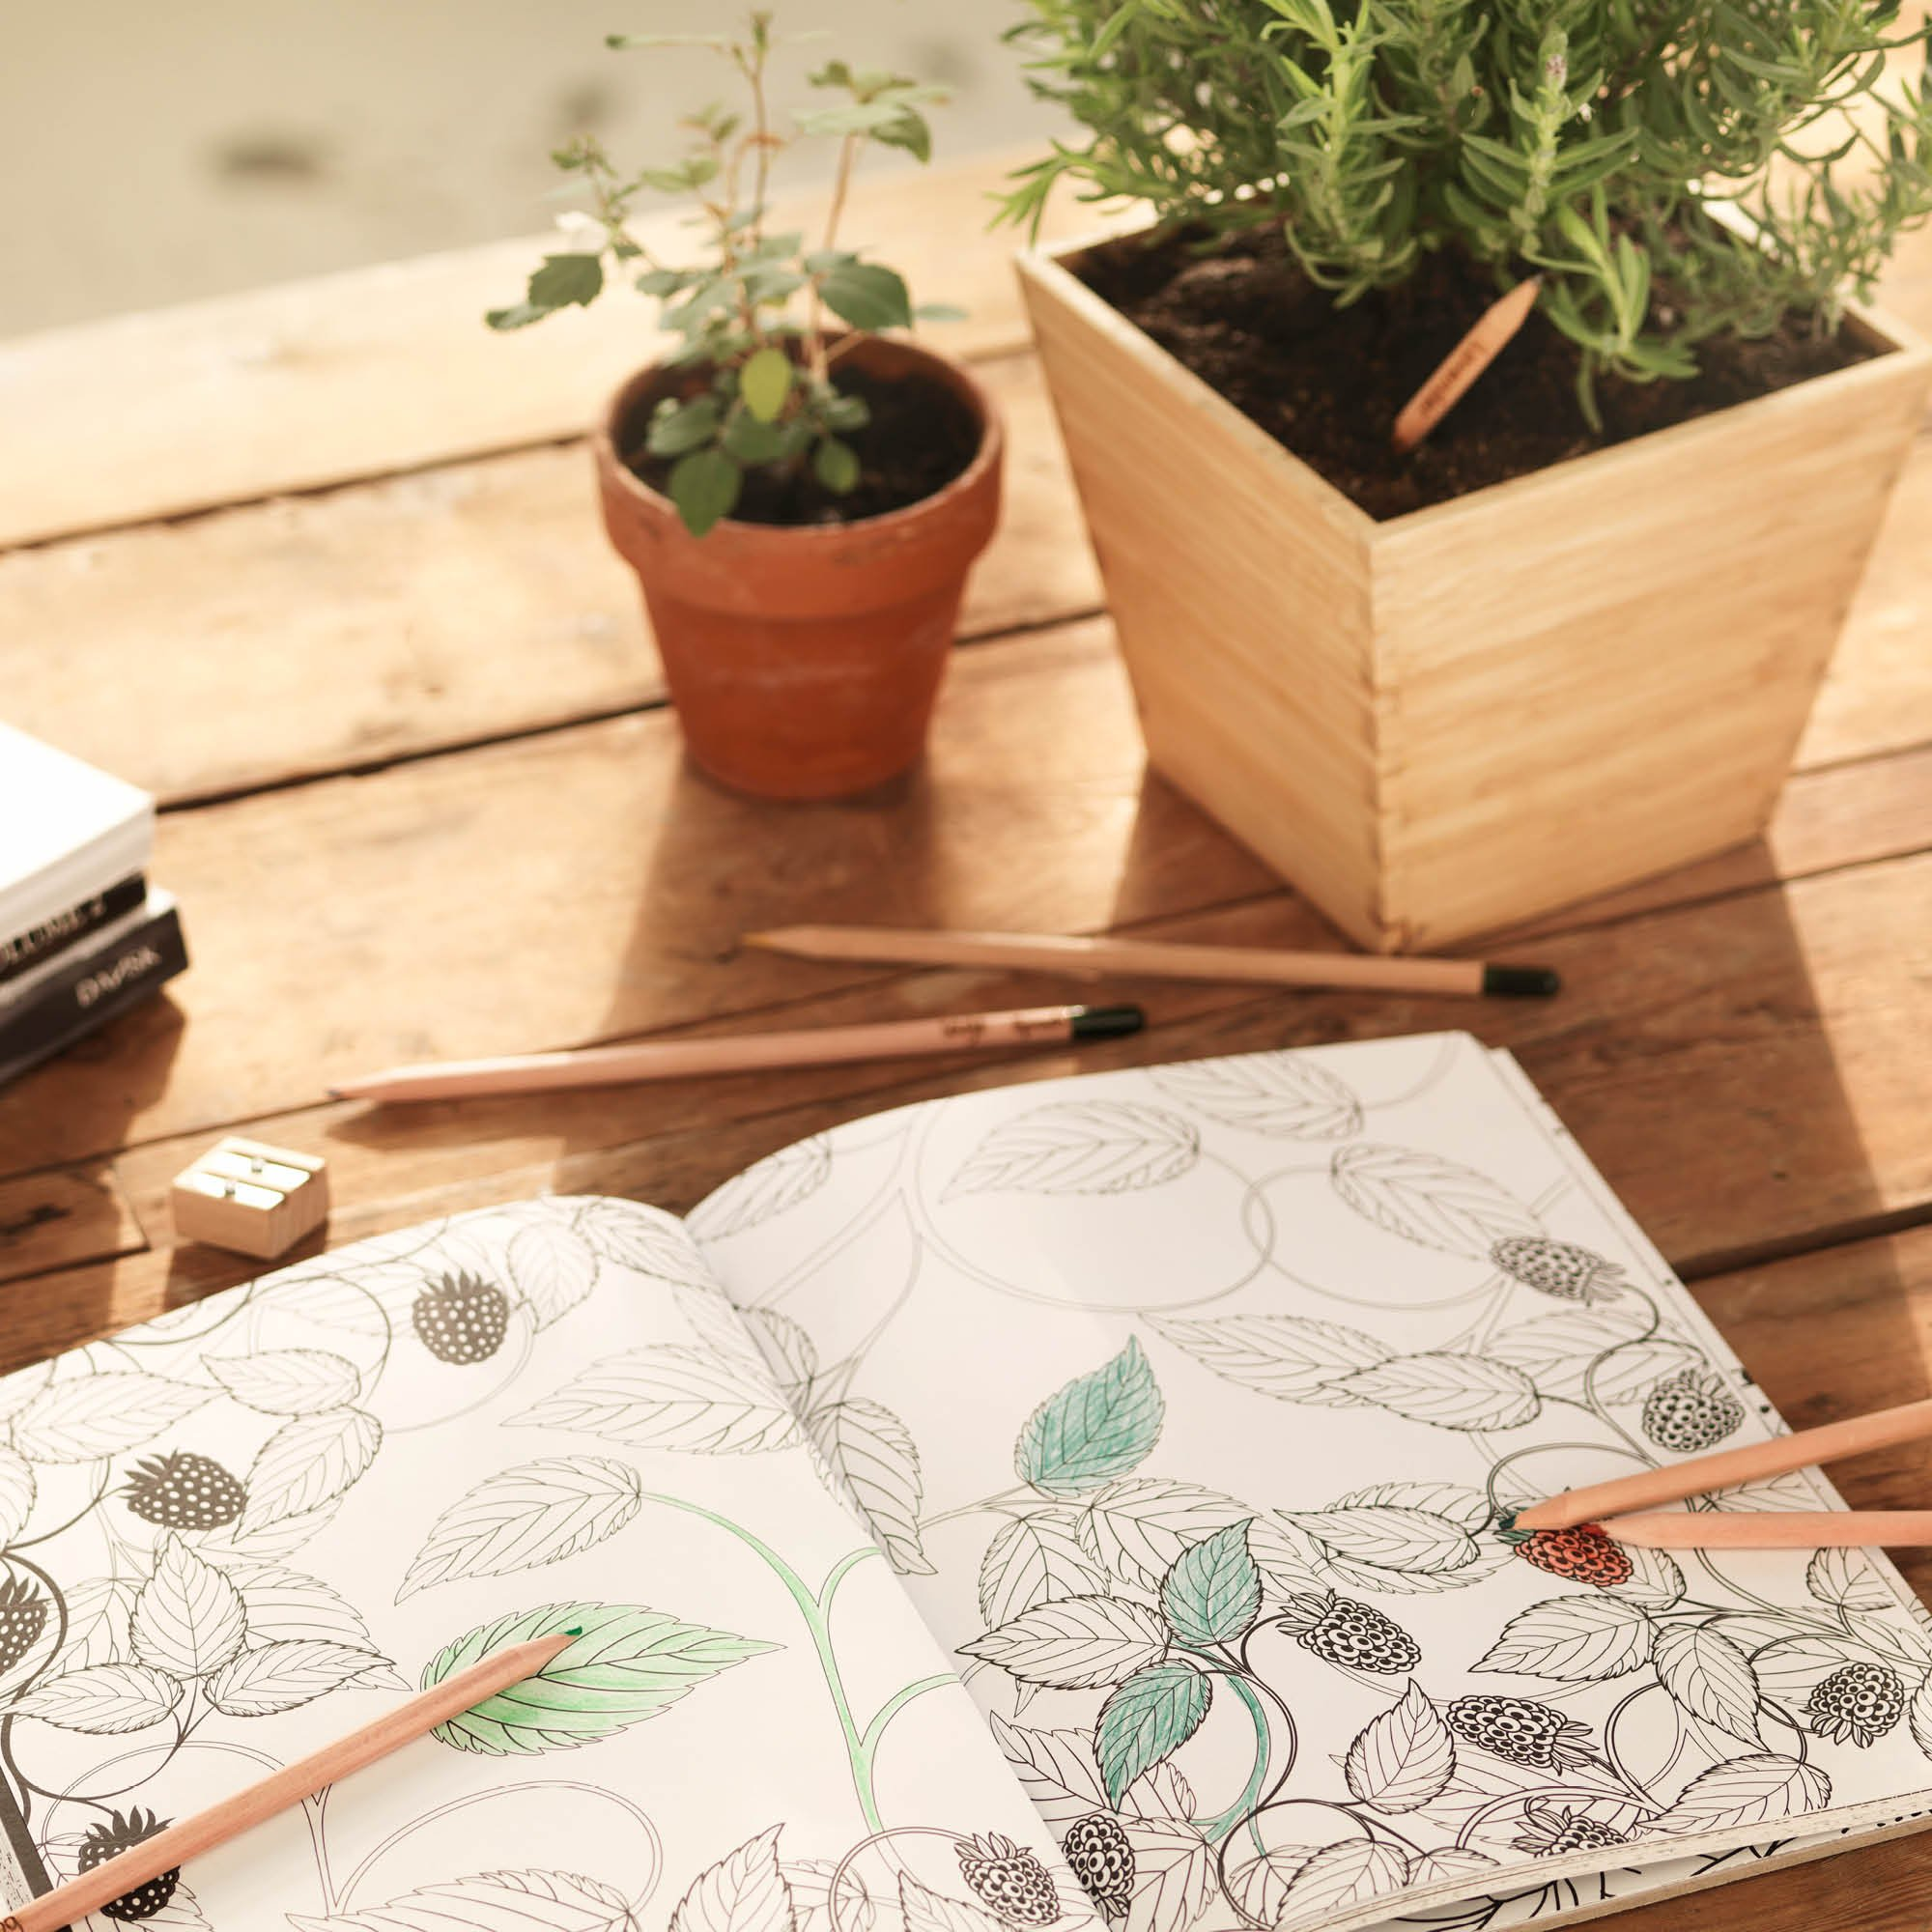 Sprout pencils - with mindful quotes | plantable graphite pencils with seeds in eco-friendly wood | 5 Pack |Gift set with herbs and flowers by Sprout (Image #6)